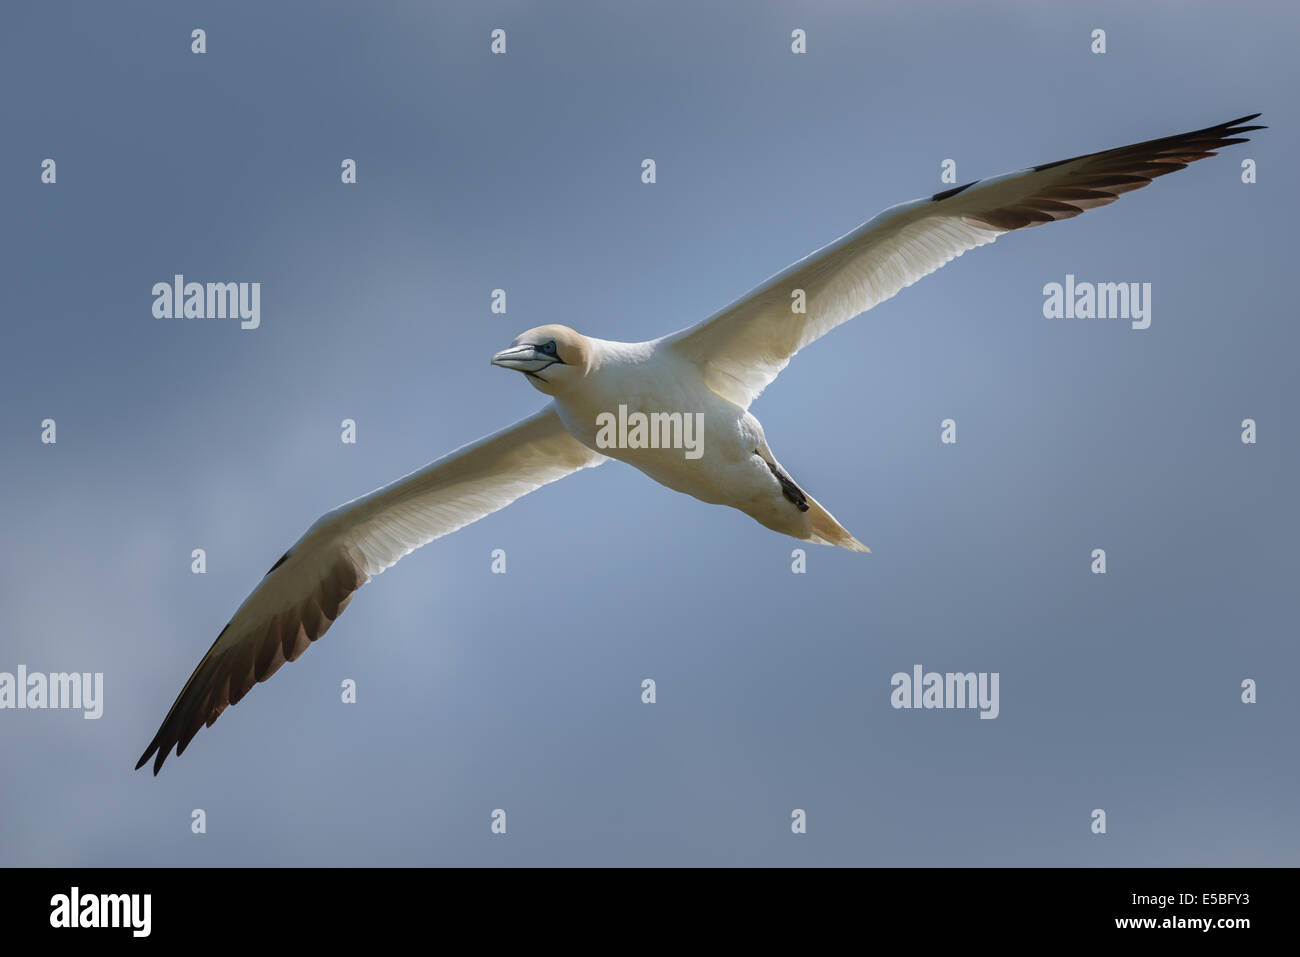 A northern gannet (Sula bassana; Morus bassanus) airborne in flight flying soars against a cloudy sky; UK. - Stock Image